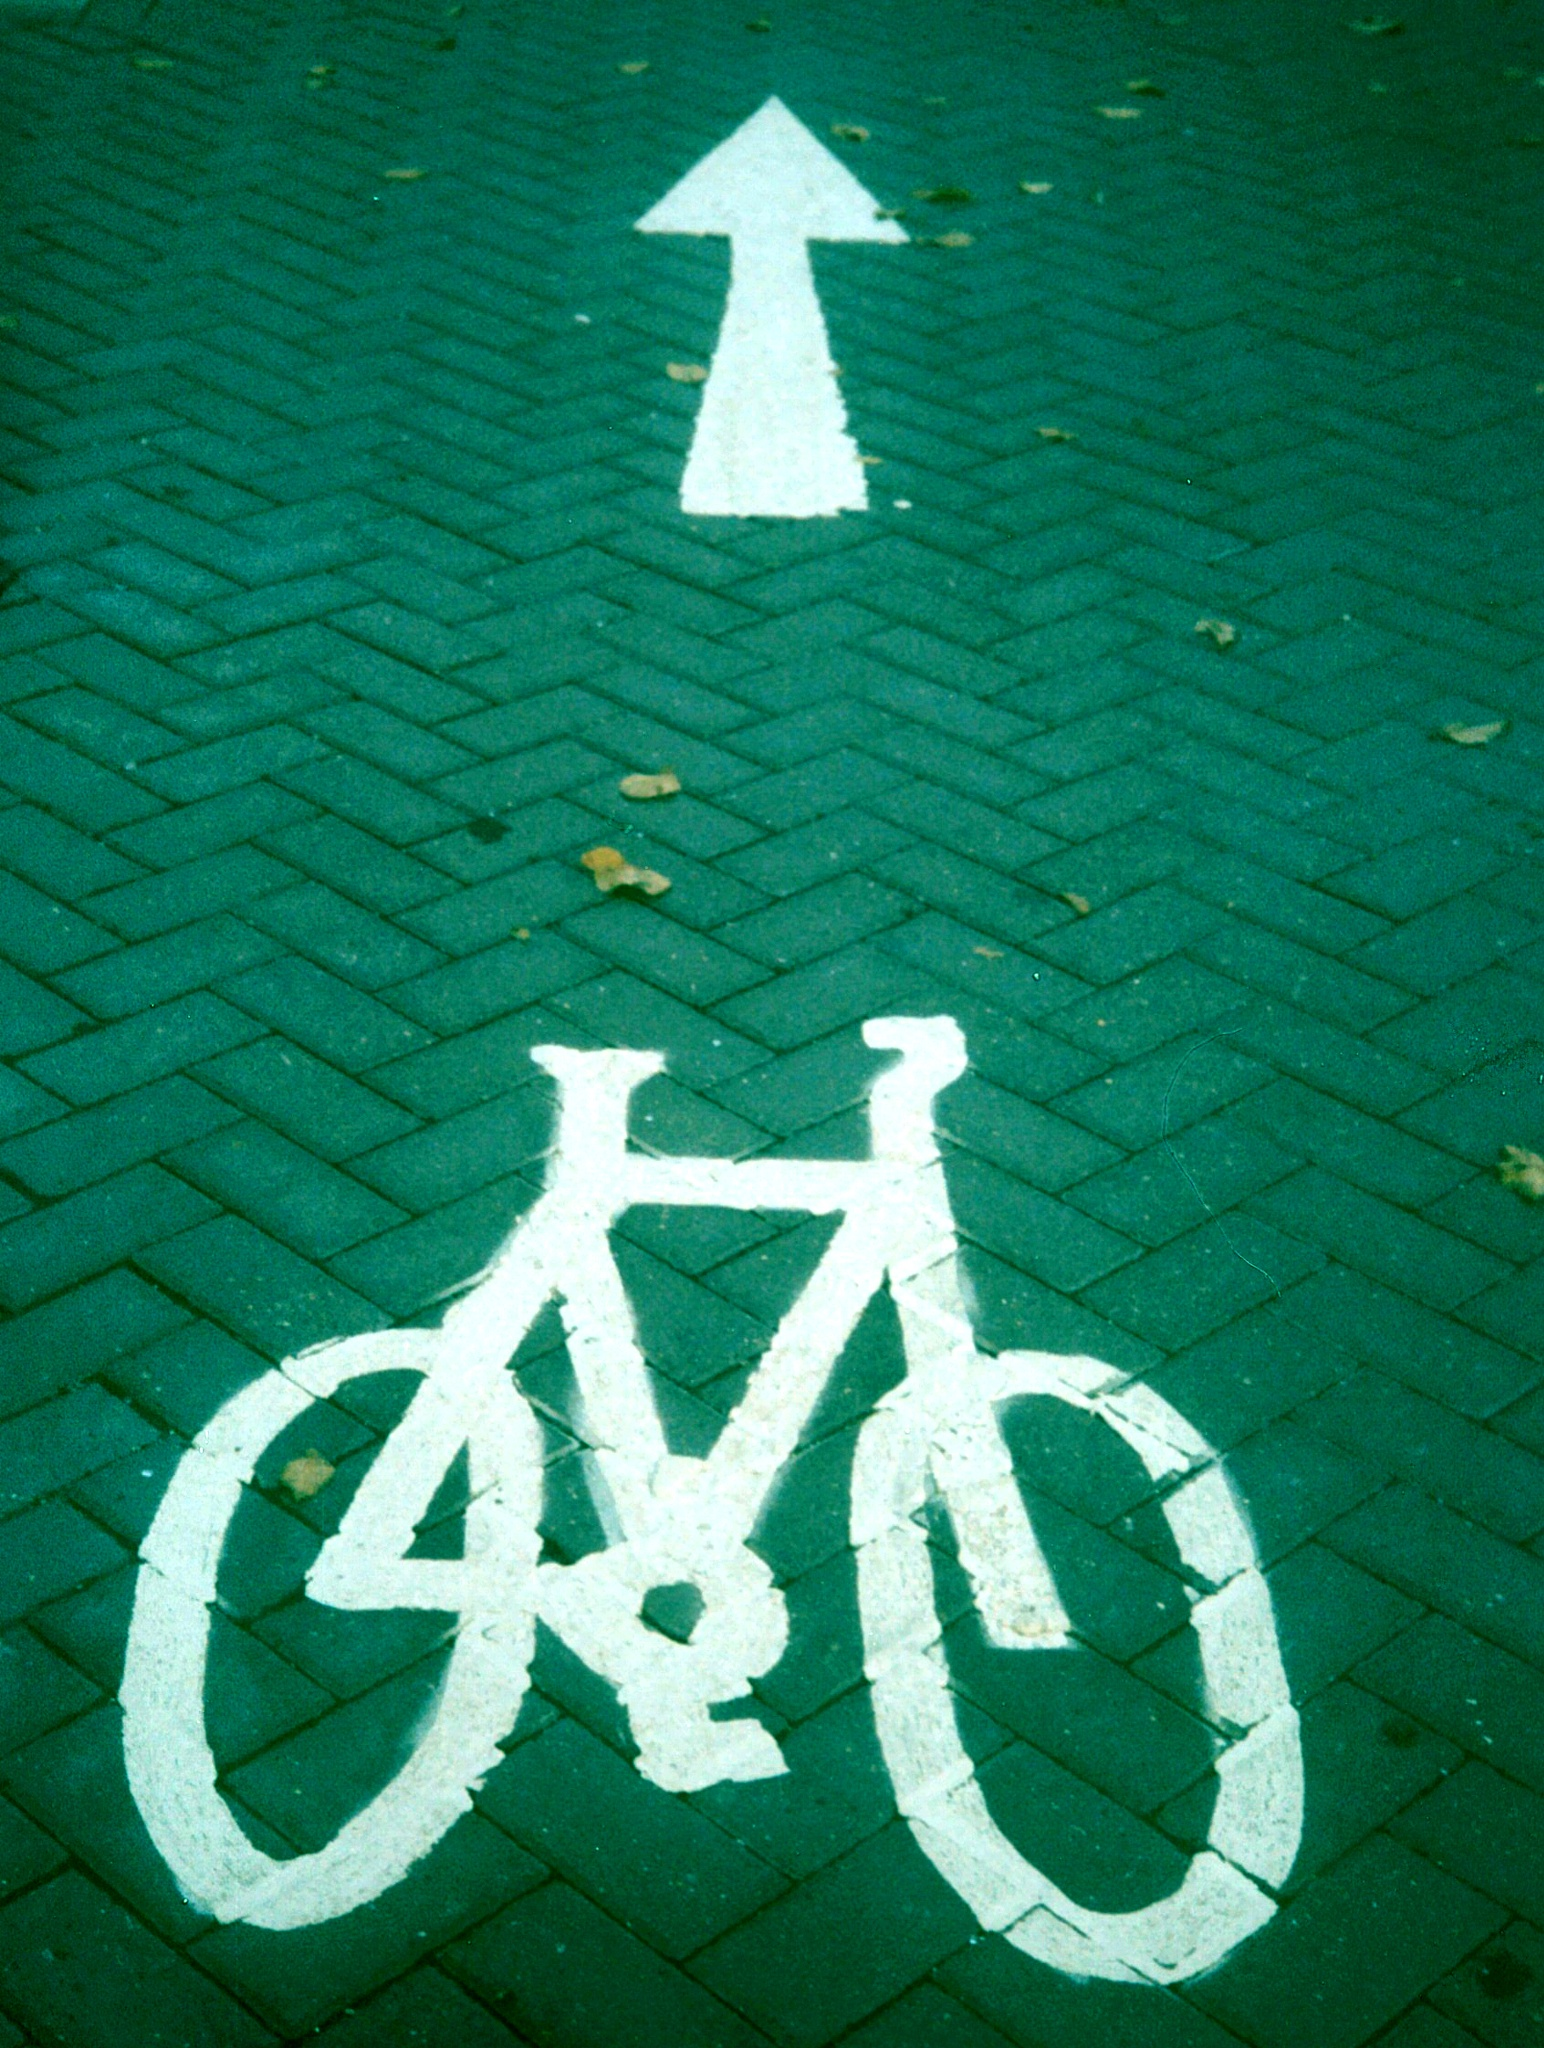 Cycle lane  by Scott Steele-Green